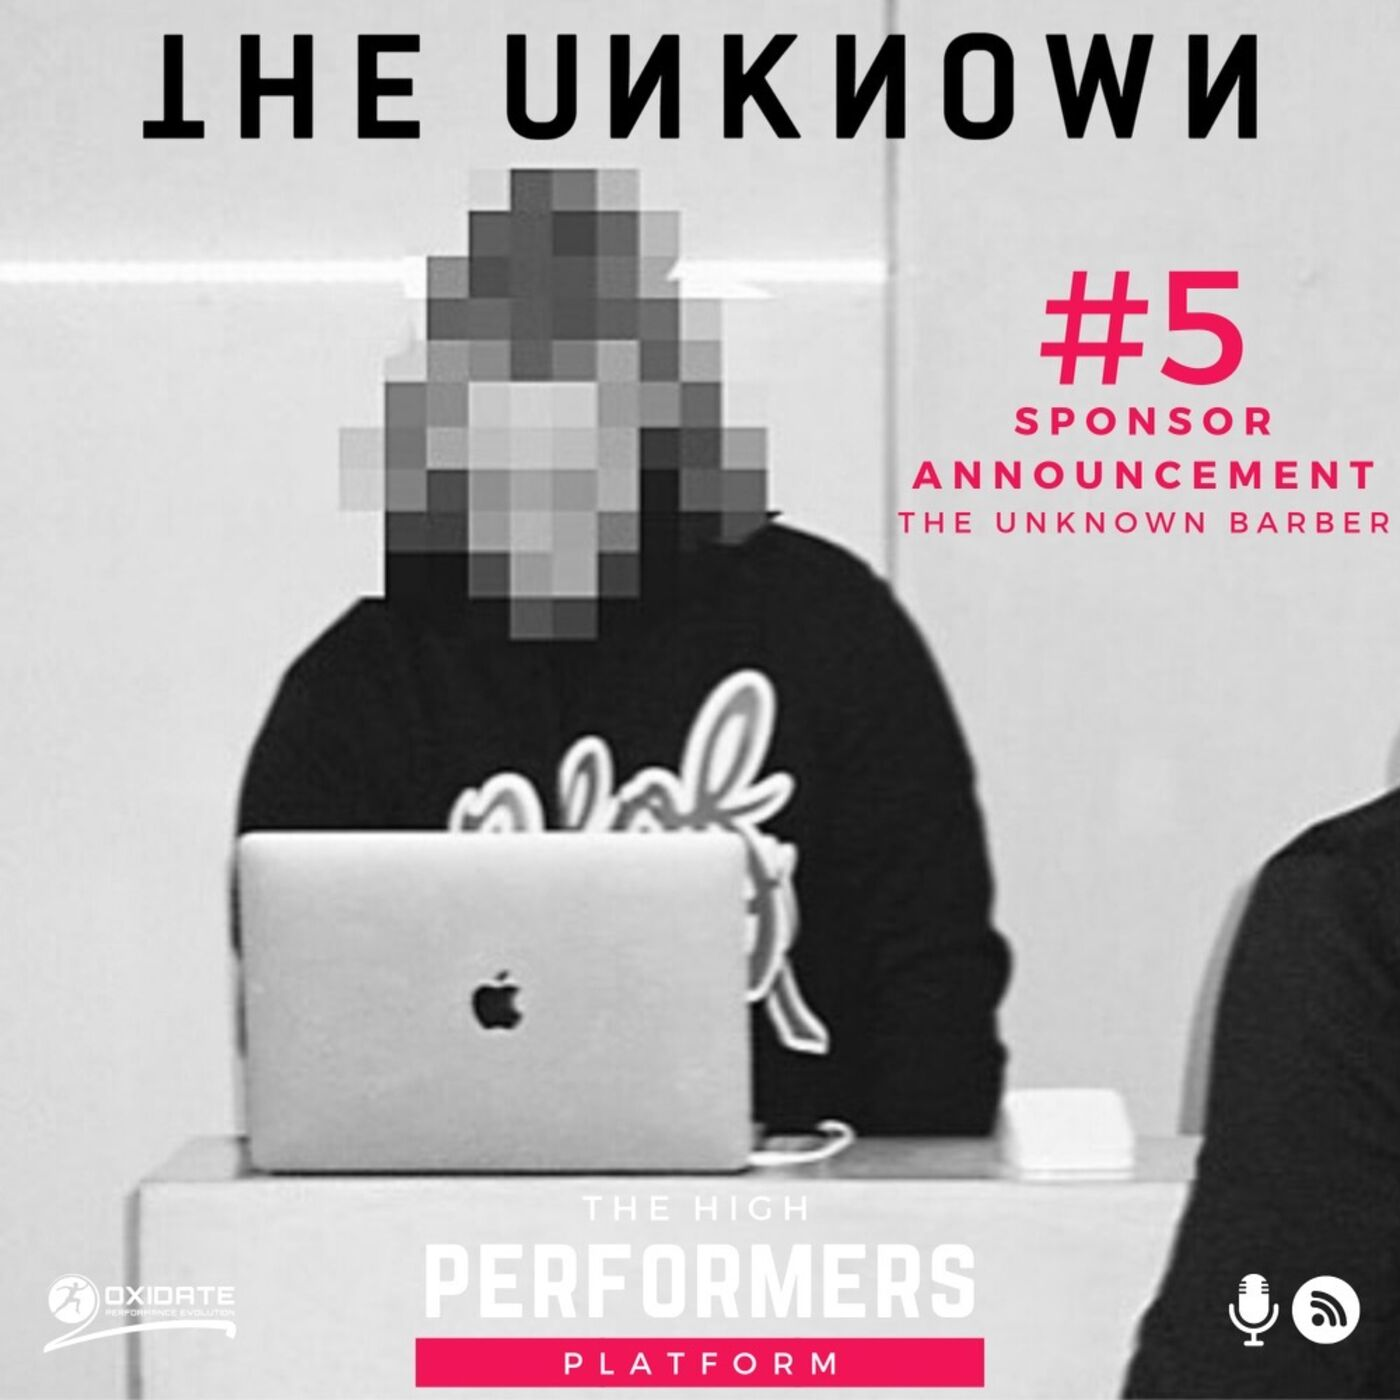 #5: The Unknown - Self taught genius in becoming a well known brand - Talking all things football, life & barbering - We welcome the Unknown Barbershop as our official sponsor